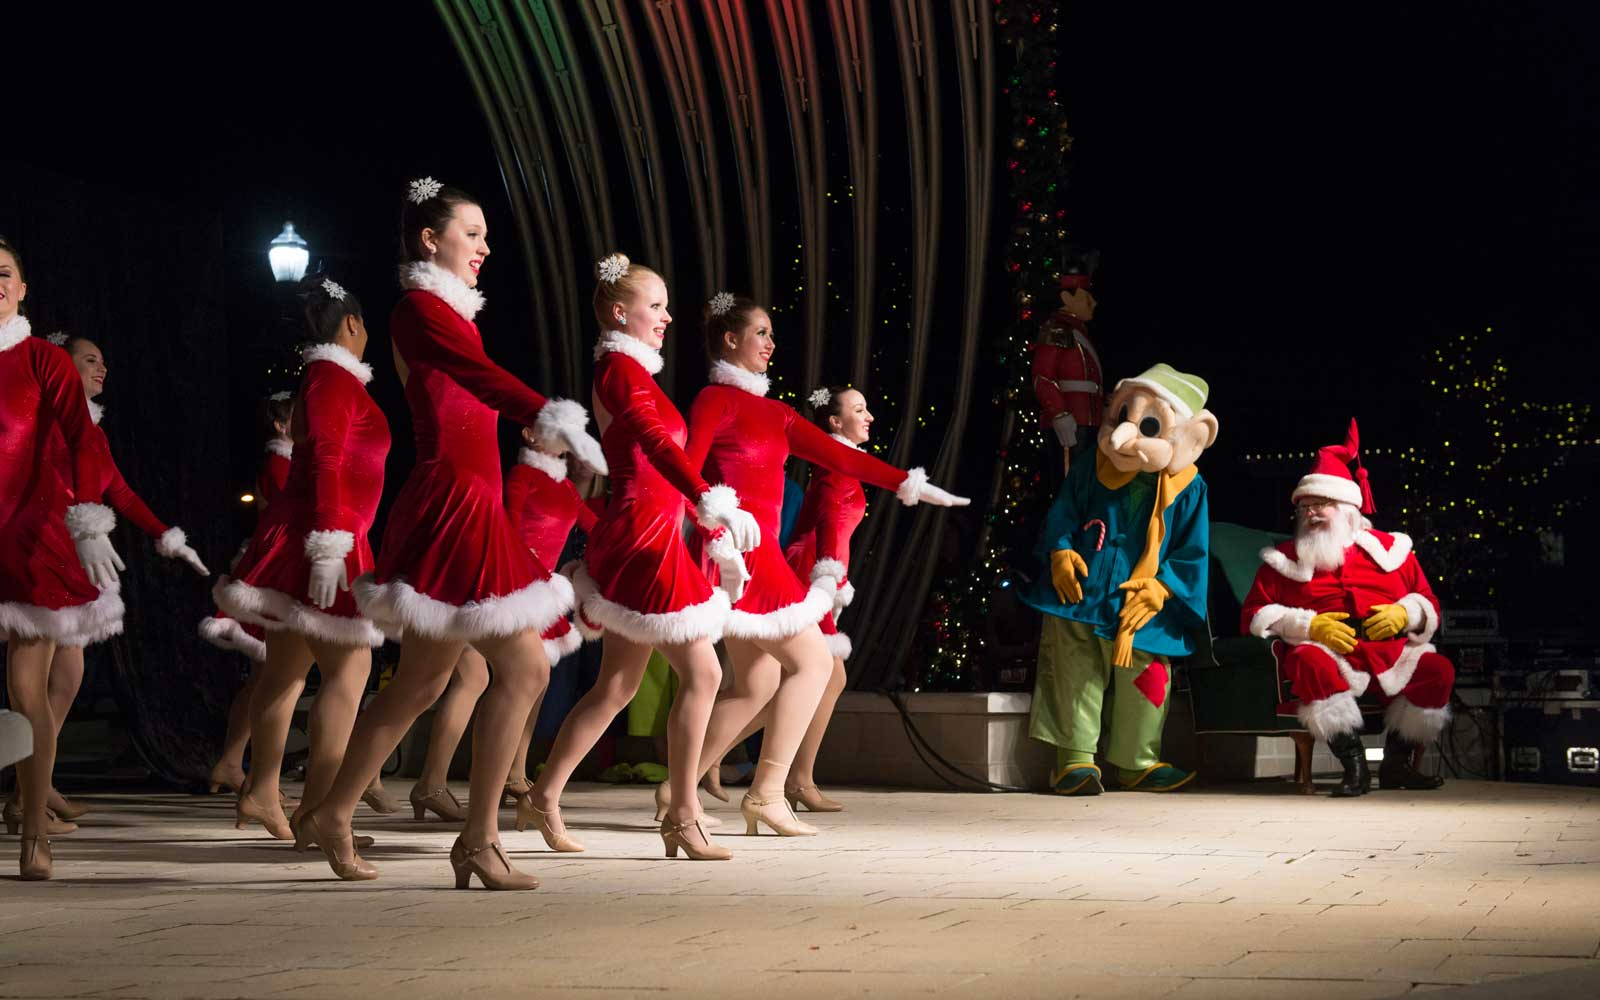 December 03, 2016 Rock Hill, SC Children and adults enjoy performances by the Rockettes during Christmasville in Old Town